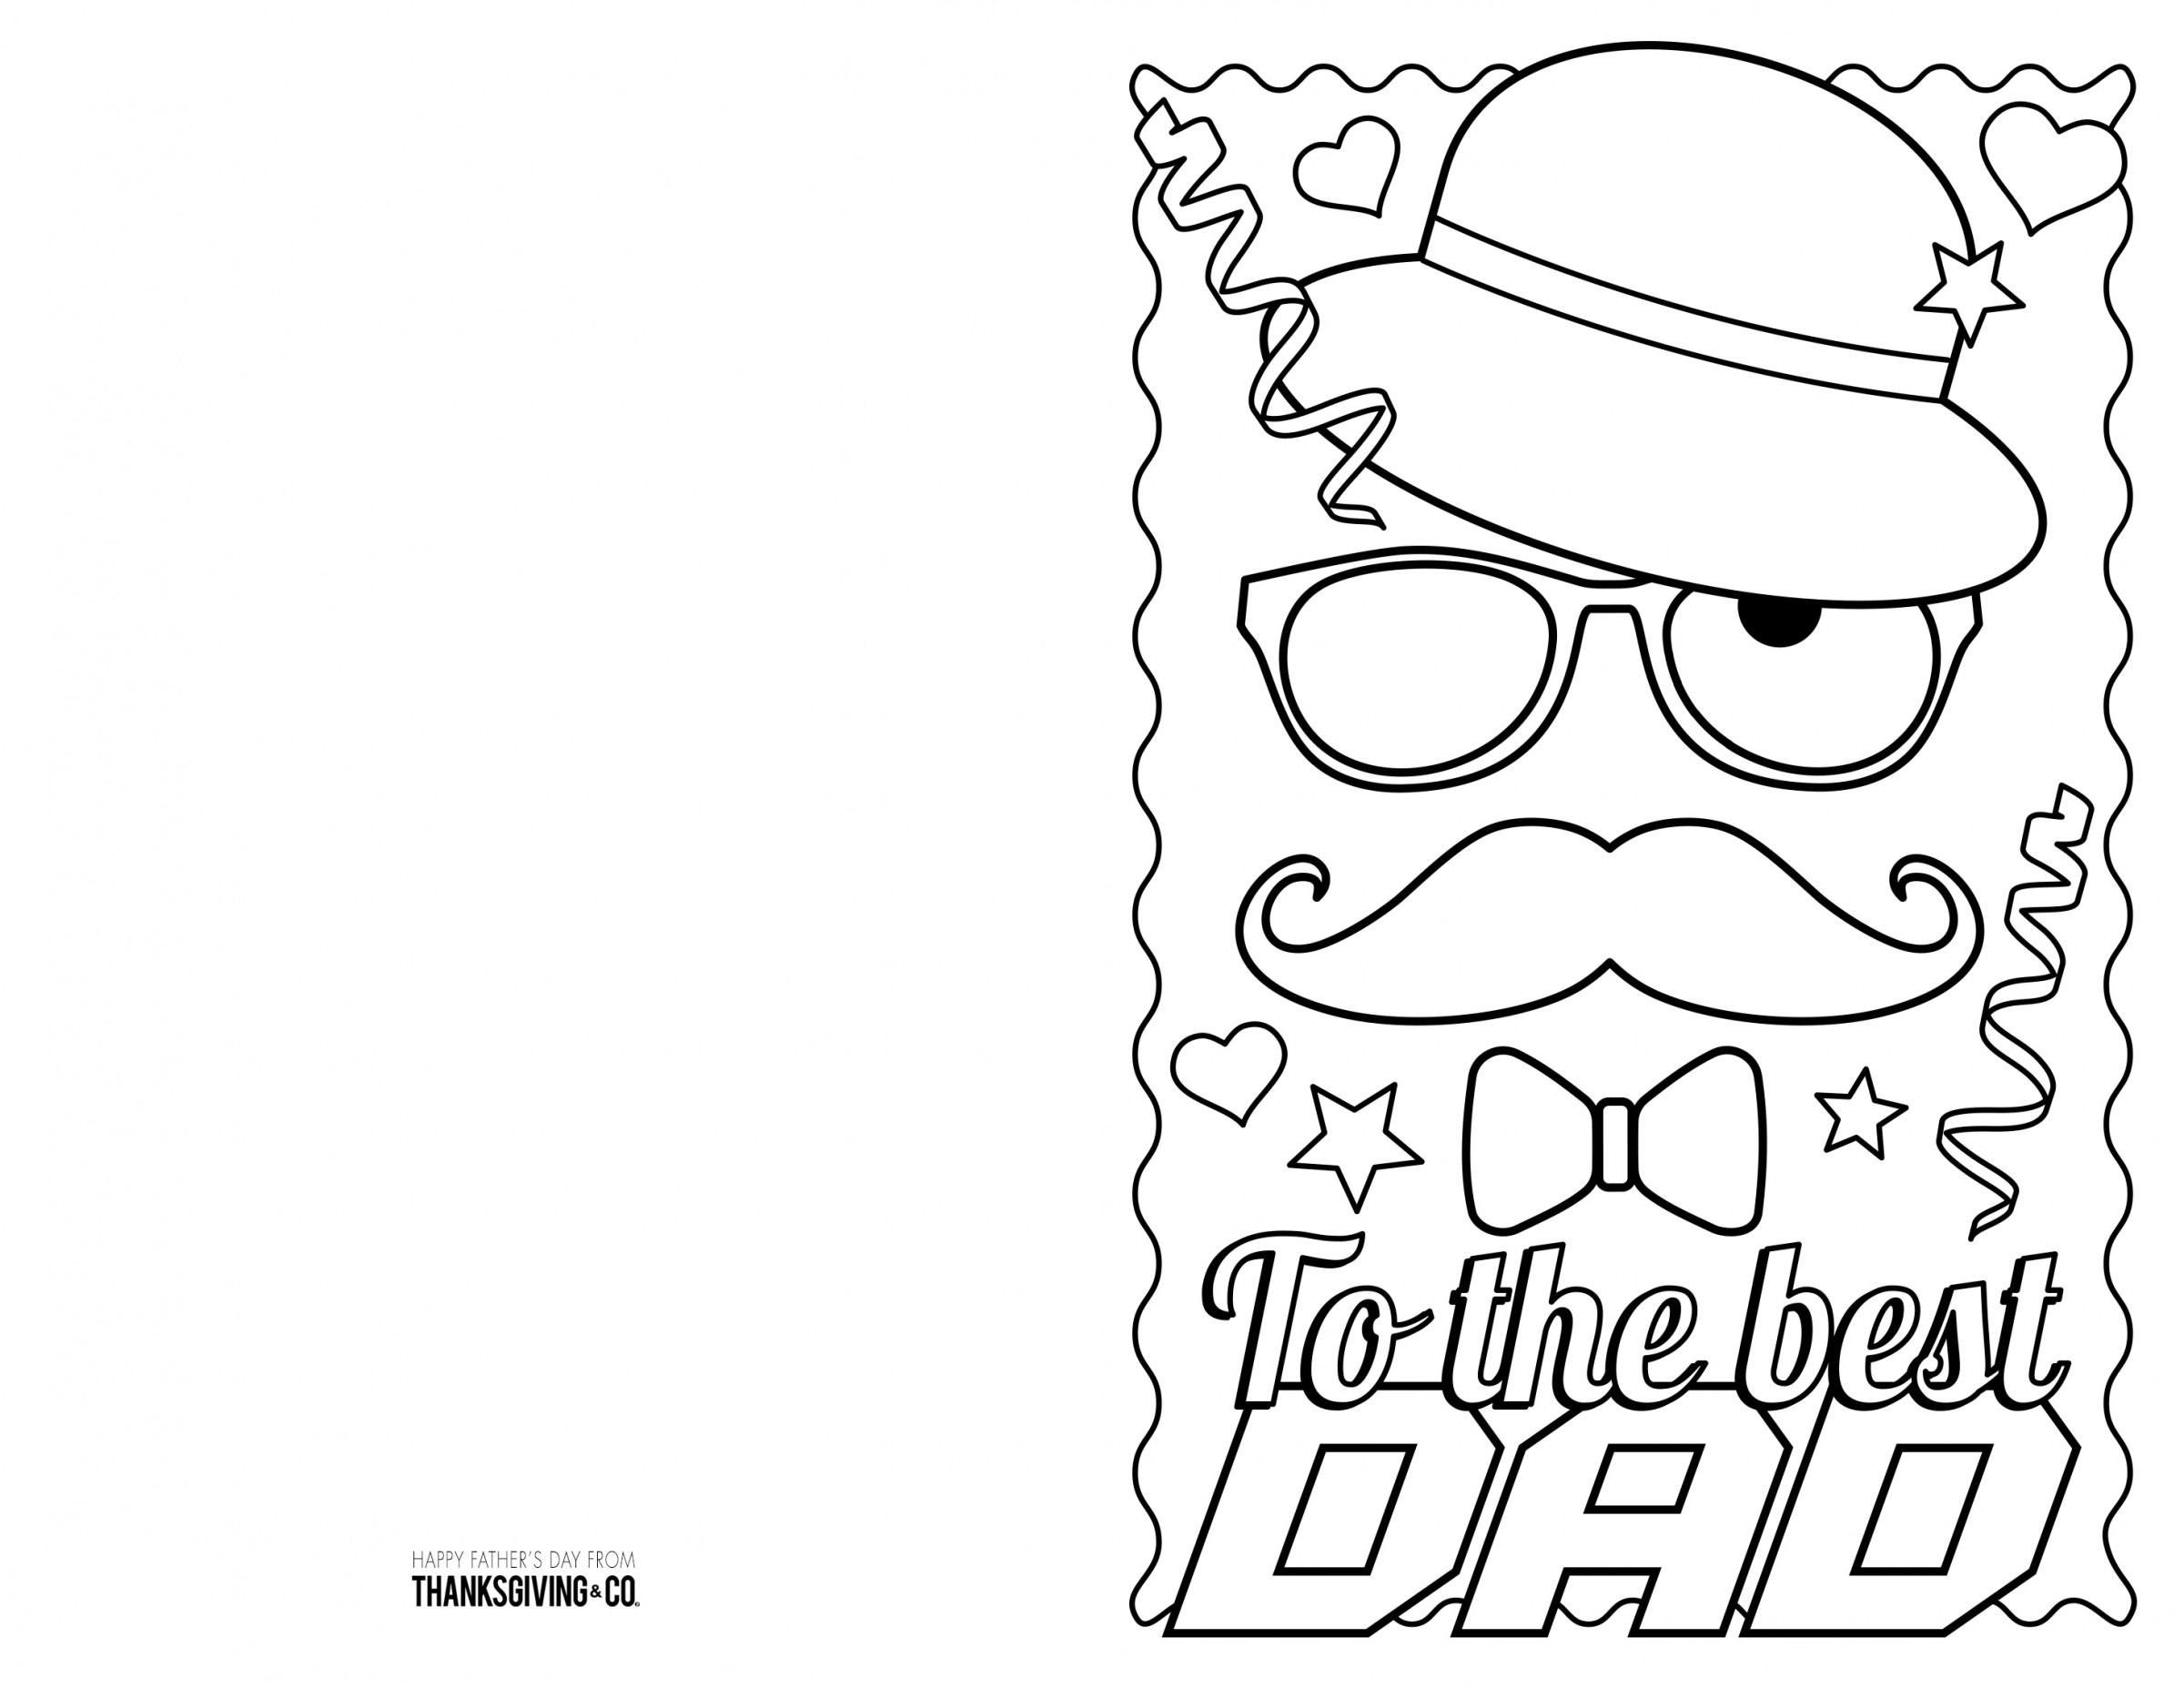 Fathers Day Colouring Printable Cards